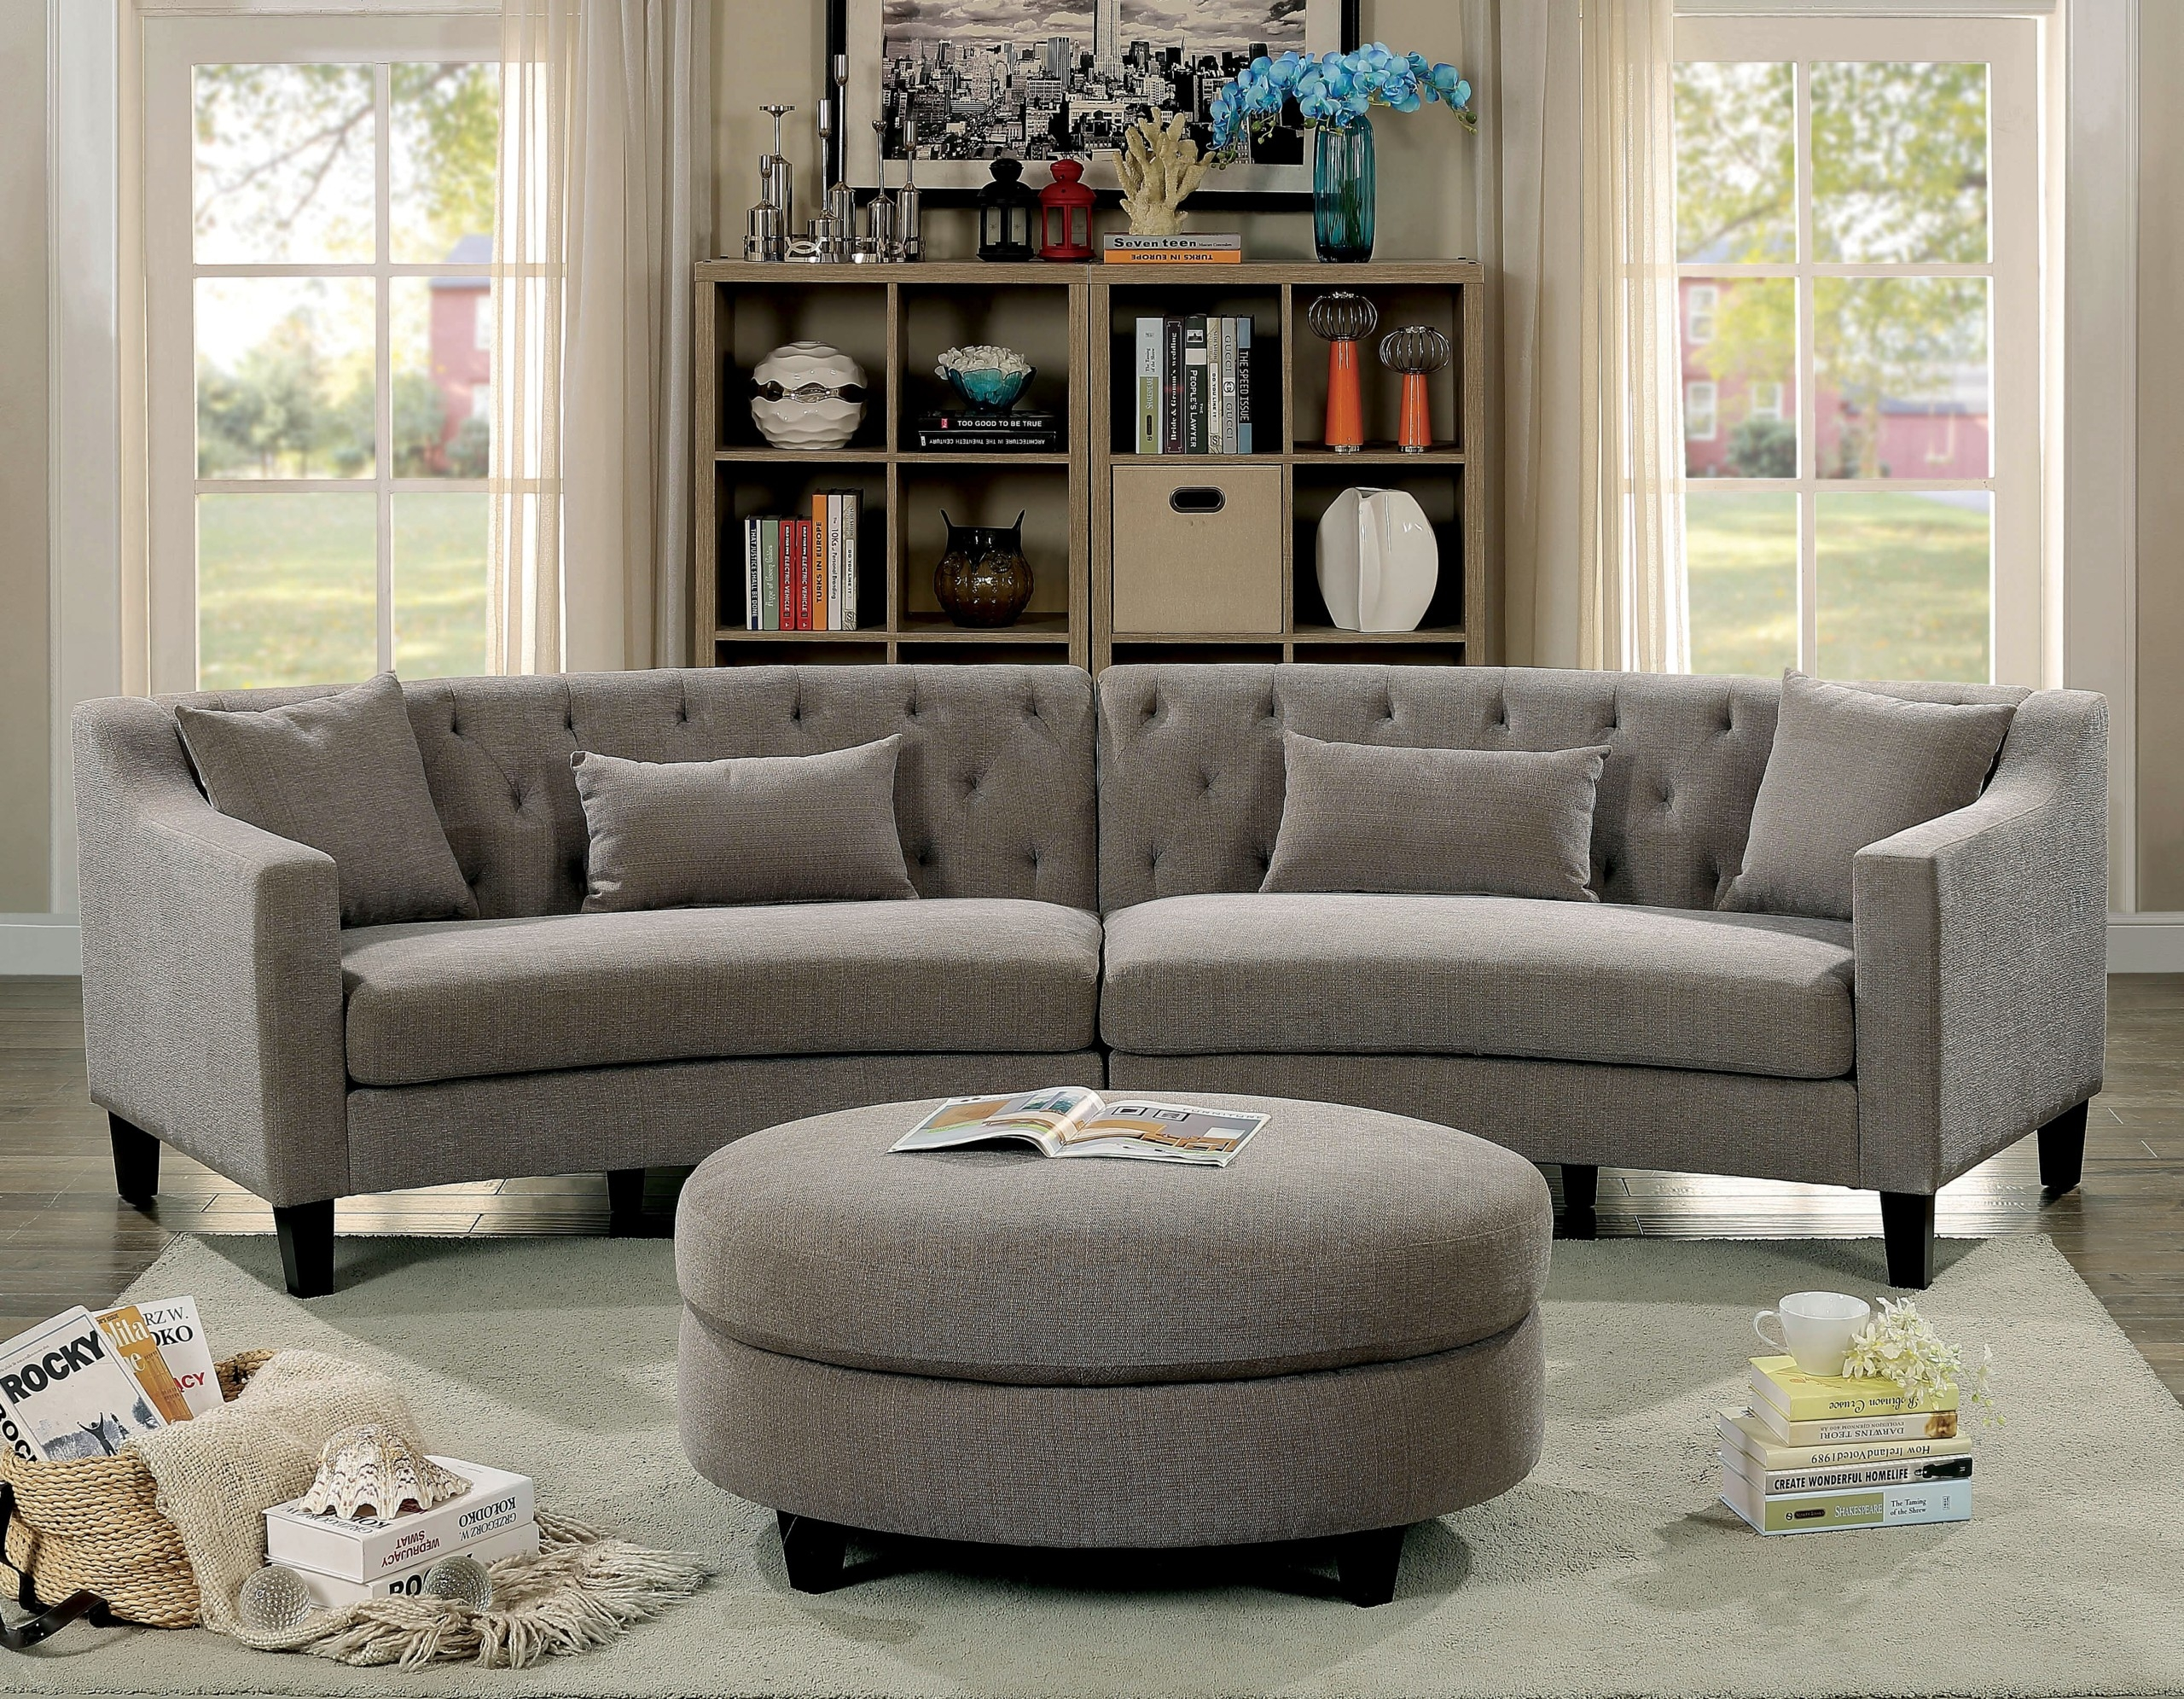 Curved Sectional Sofa Couch Ideas On Foter